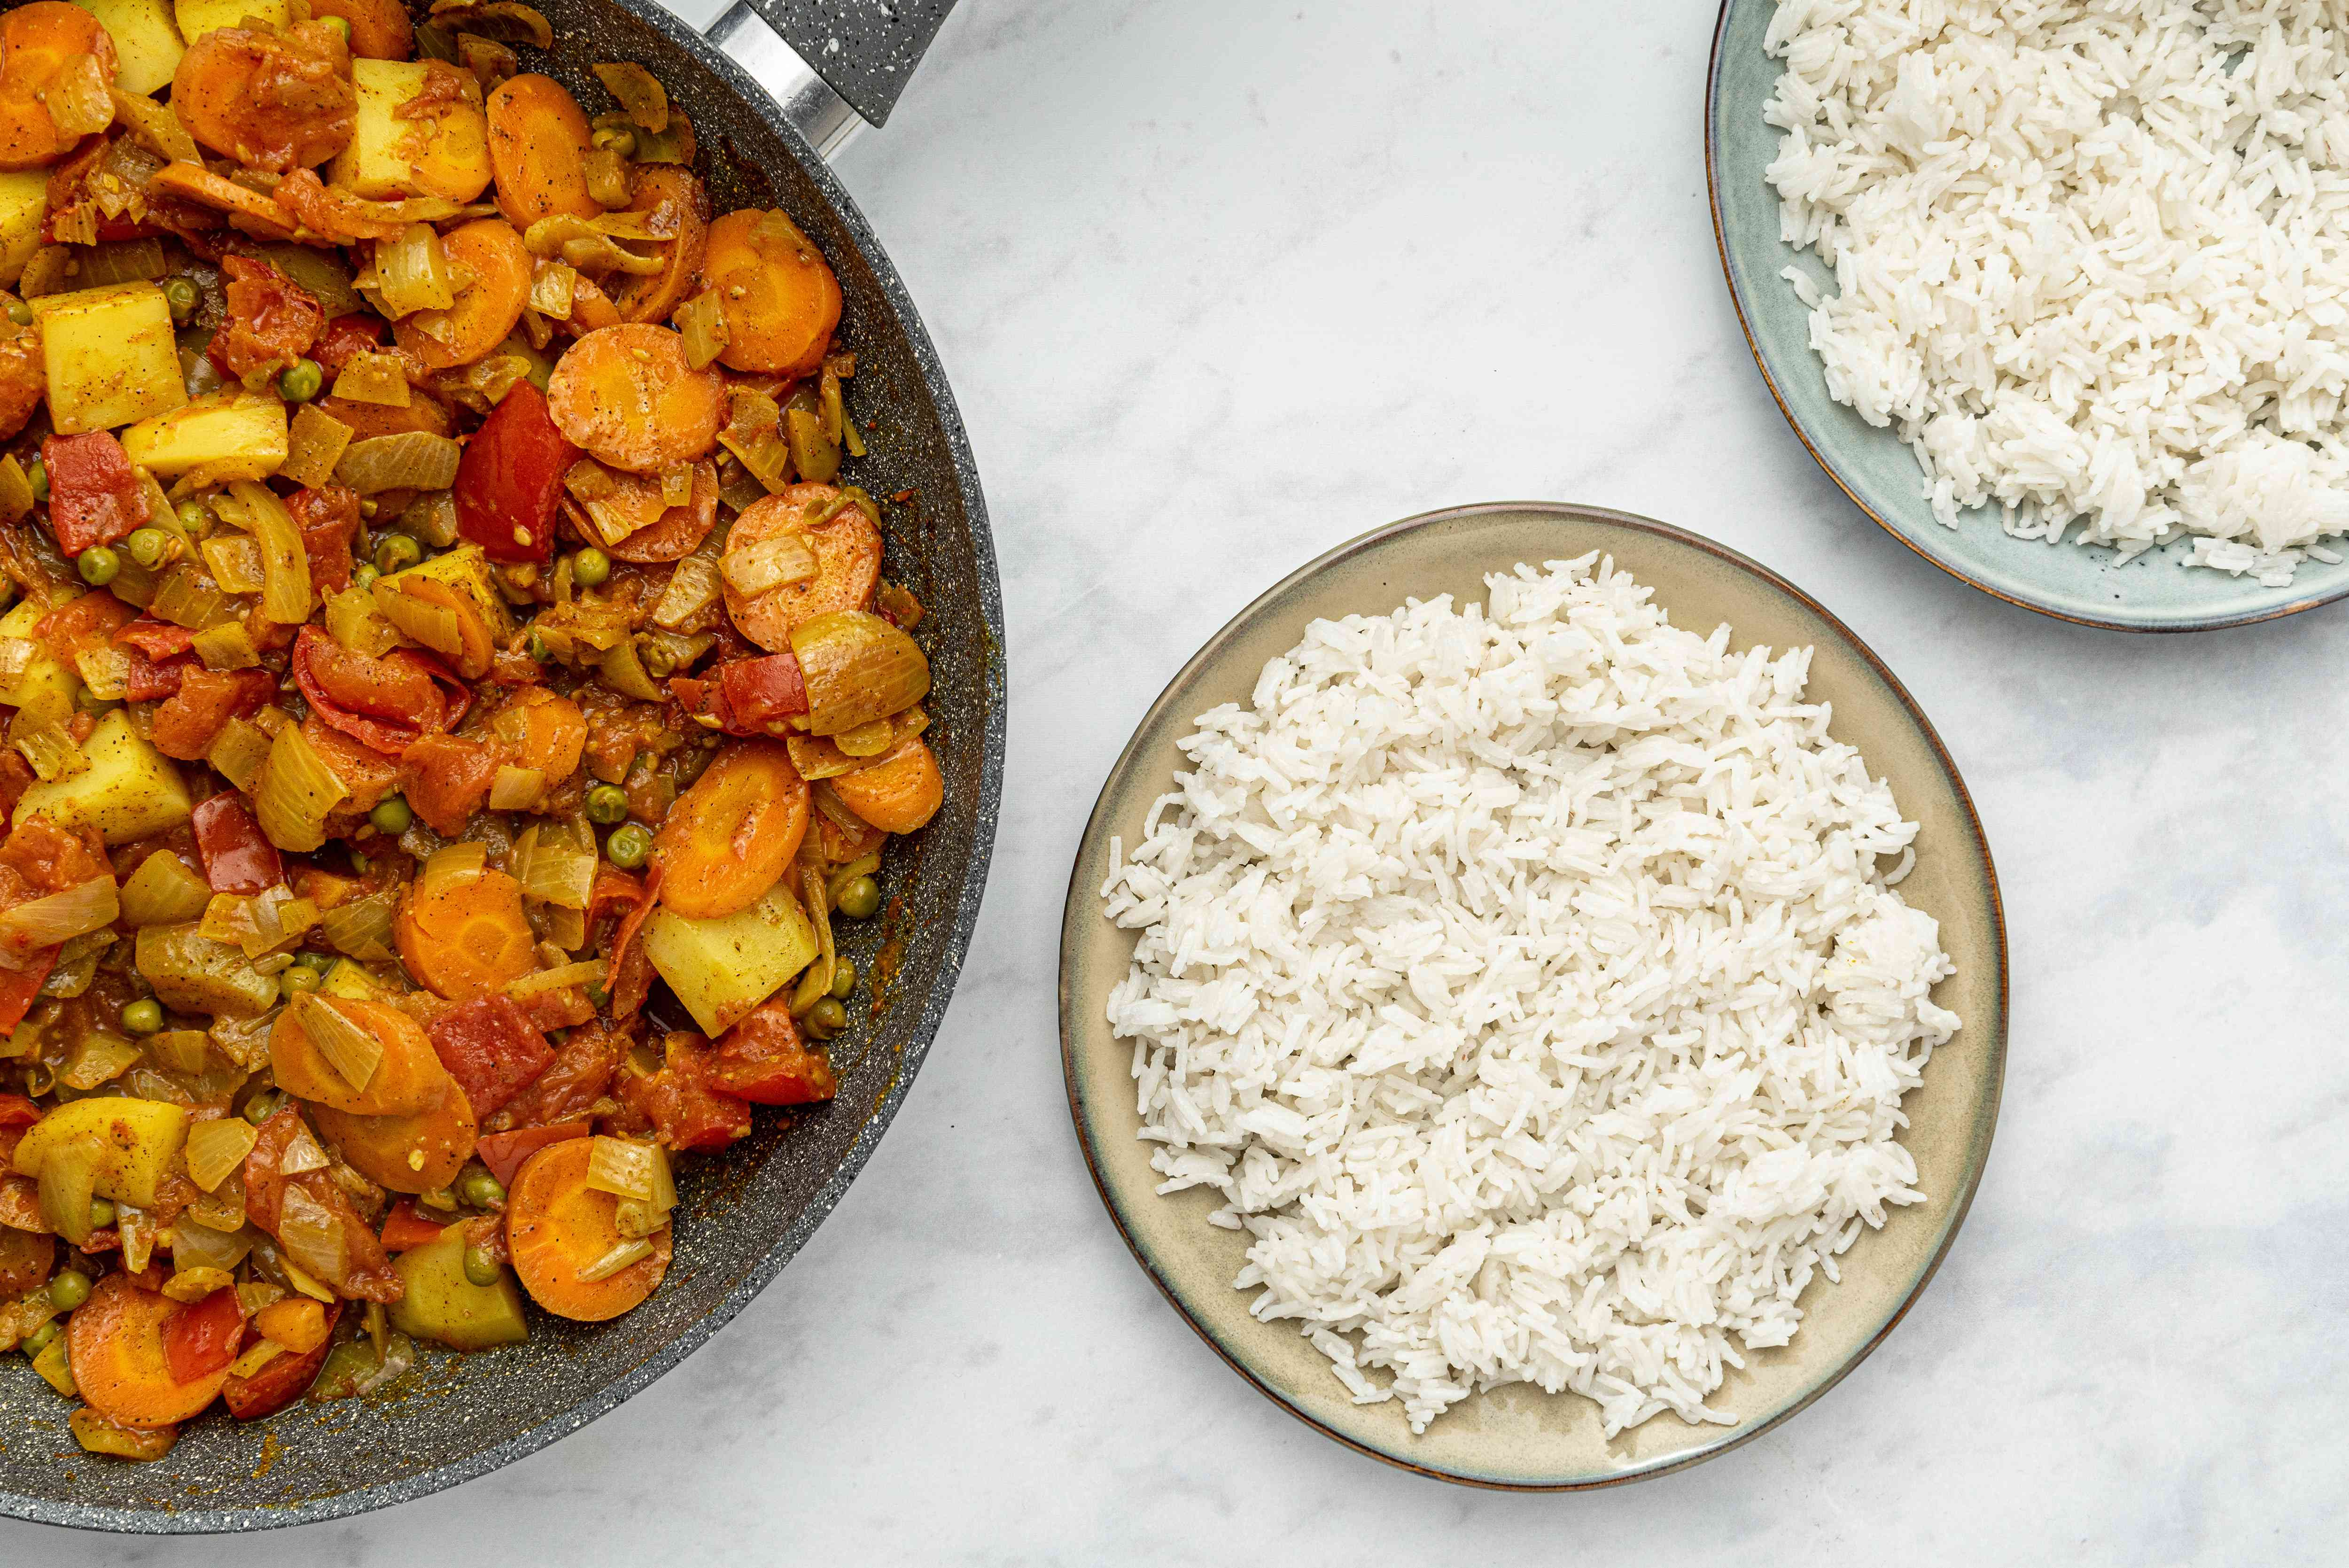 Easy Curried Indian Vegetables in a pan, served with white rice